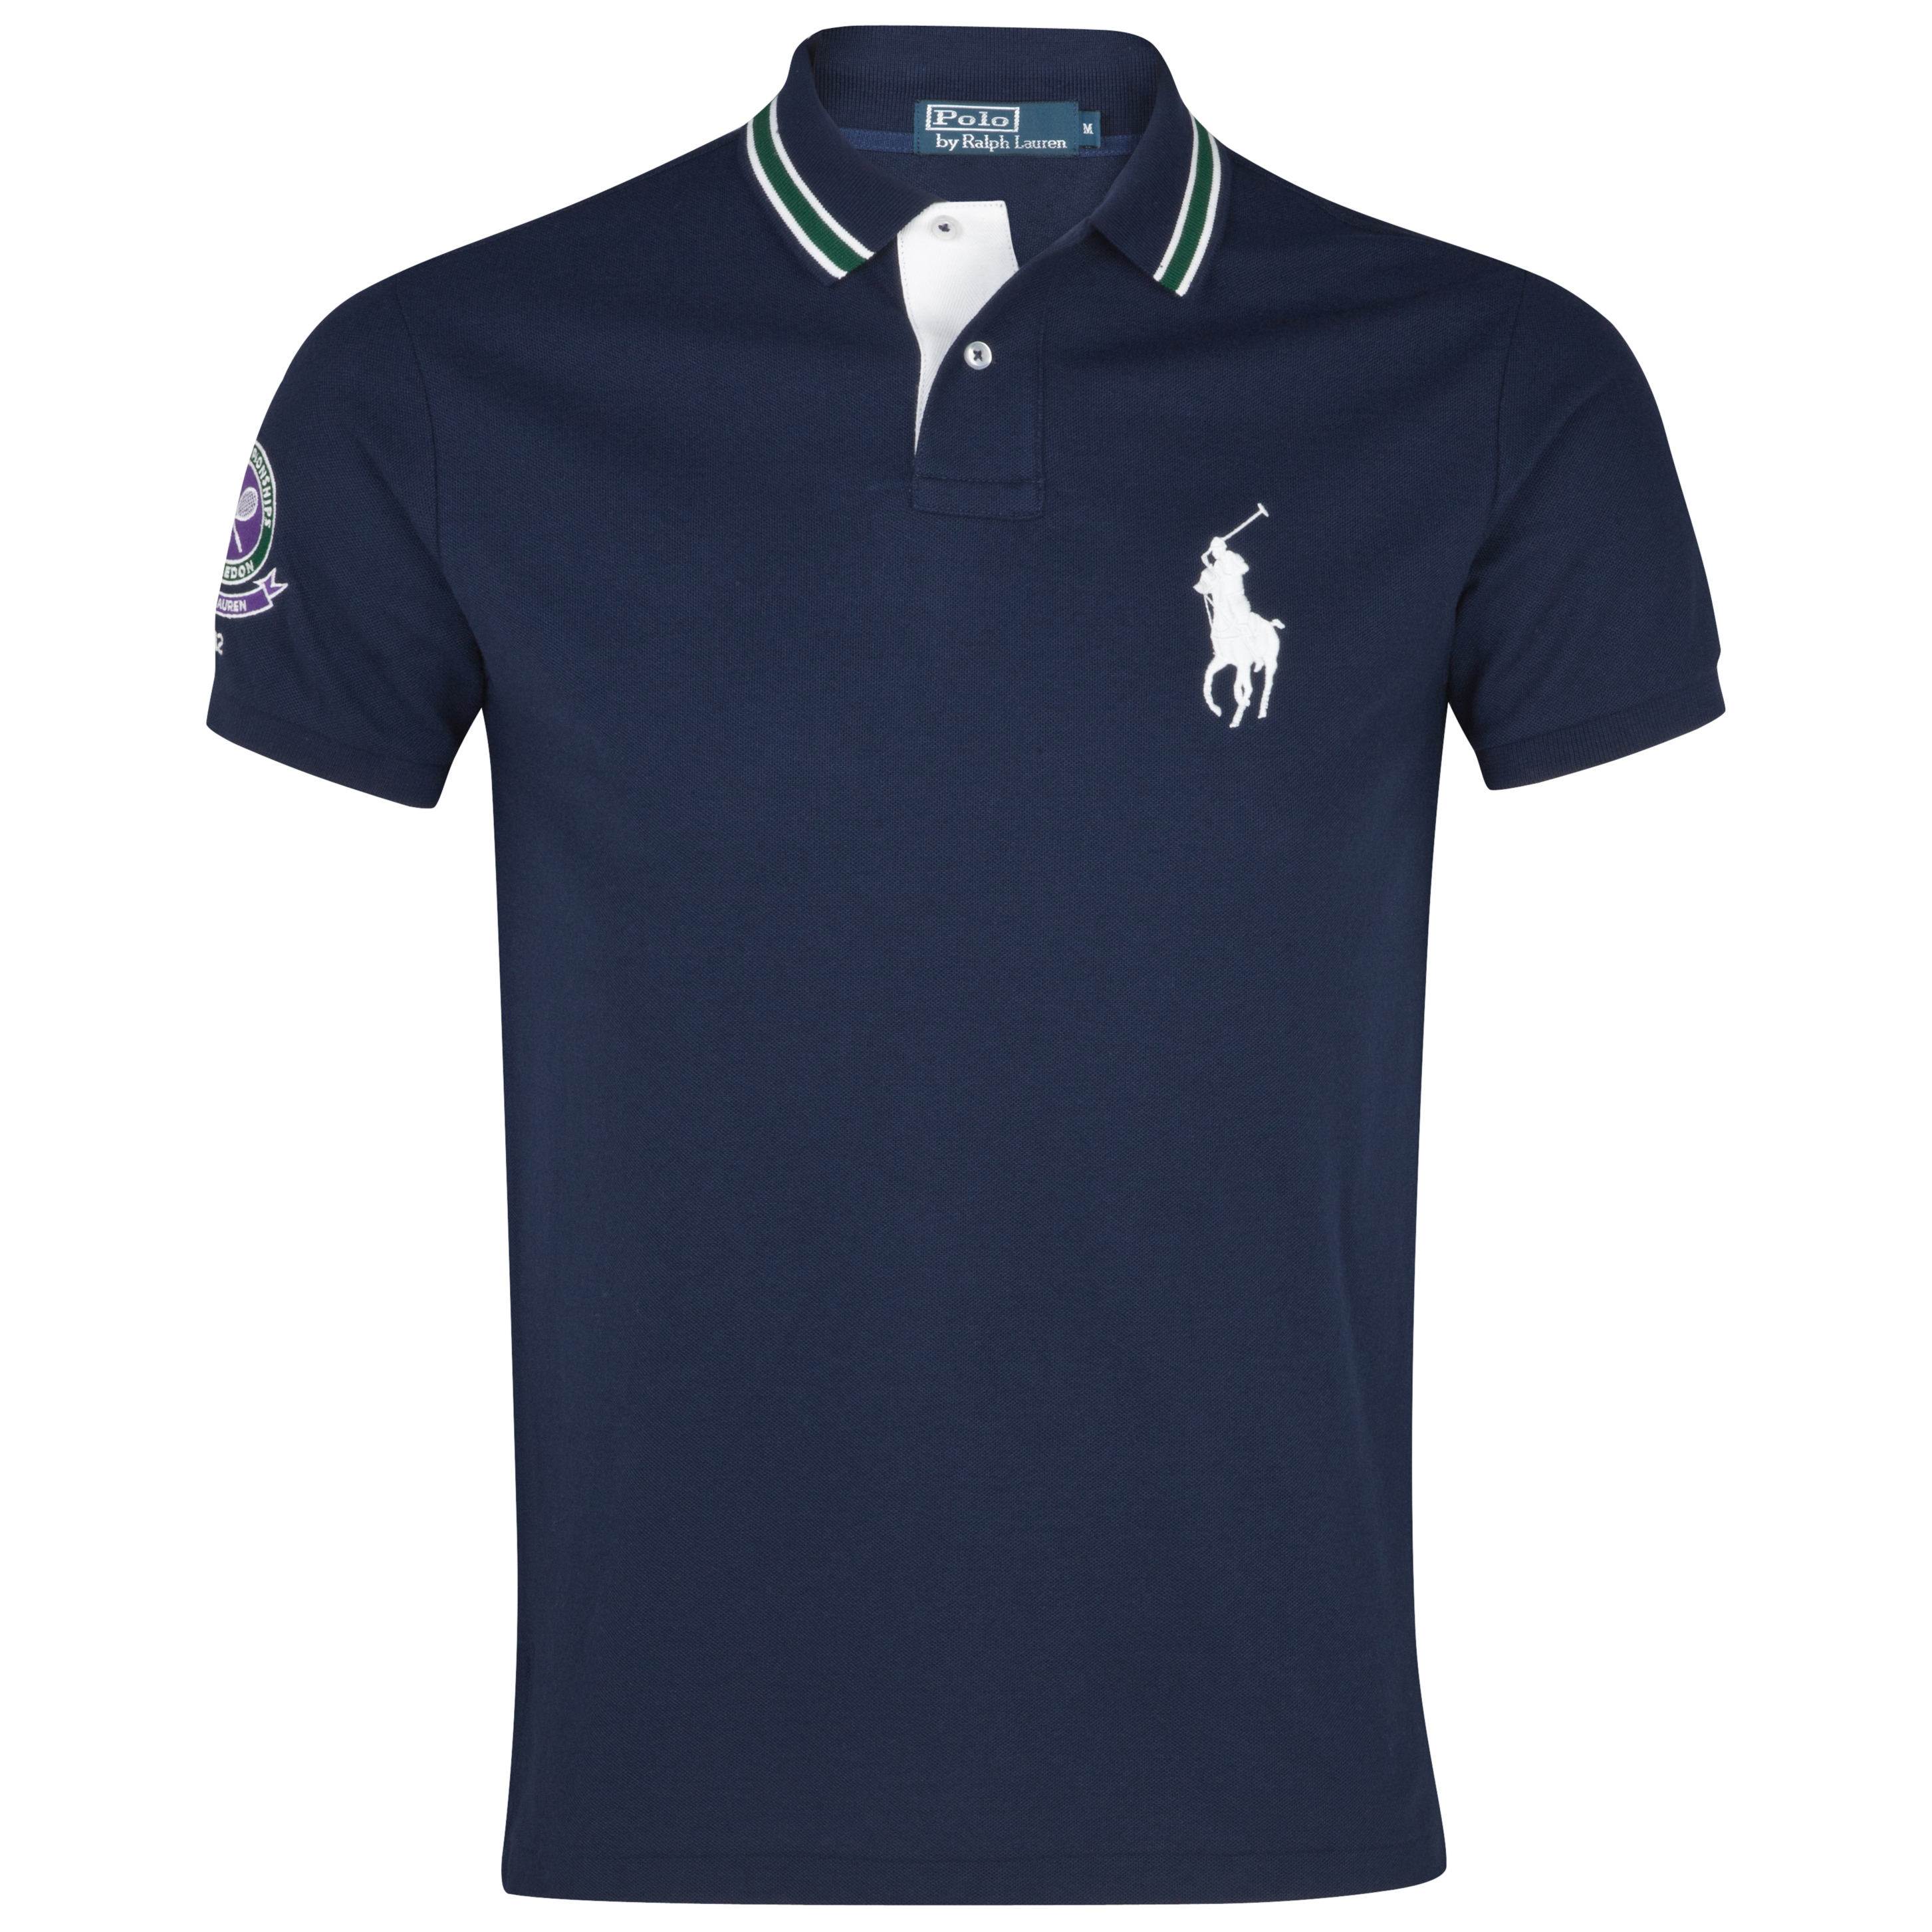 Polo Ralph Lauren Wimbledon Ball Boy Cotton Pique Polo - French Navy - Infant Girls